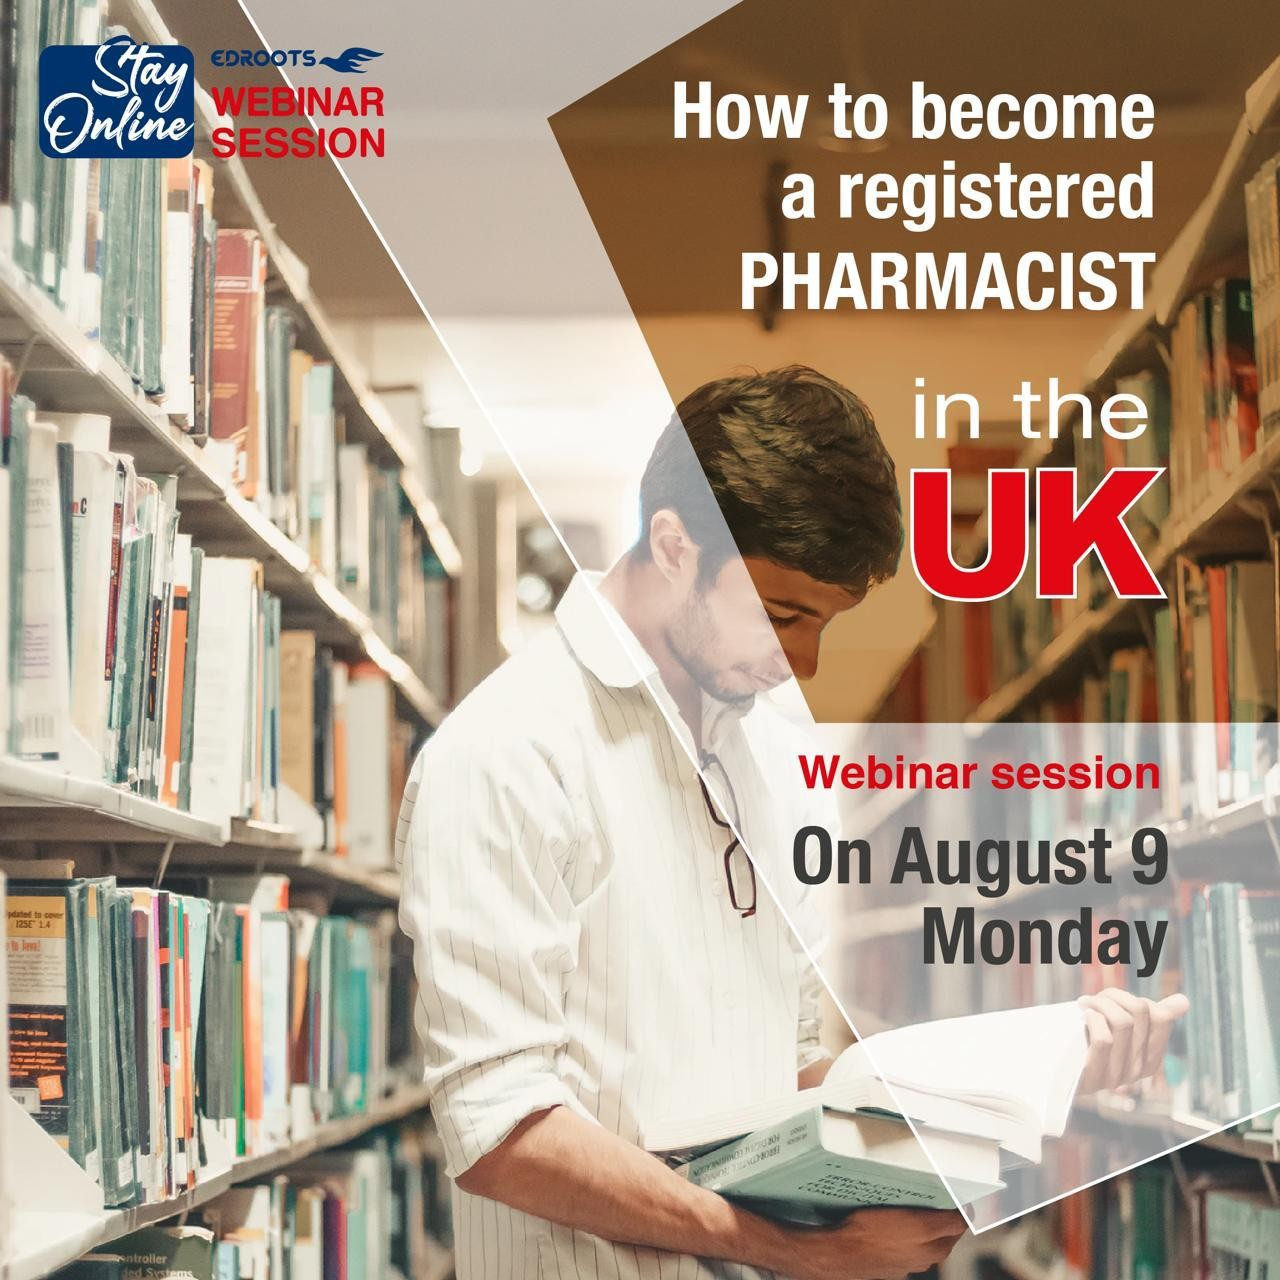 webinar on how to become a registered pharmacist in uk